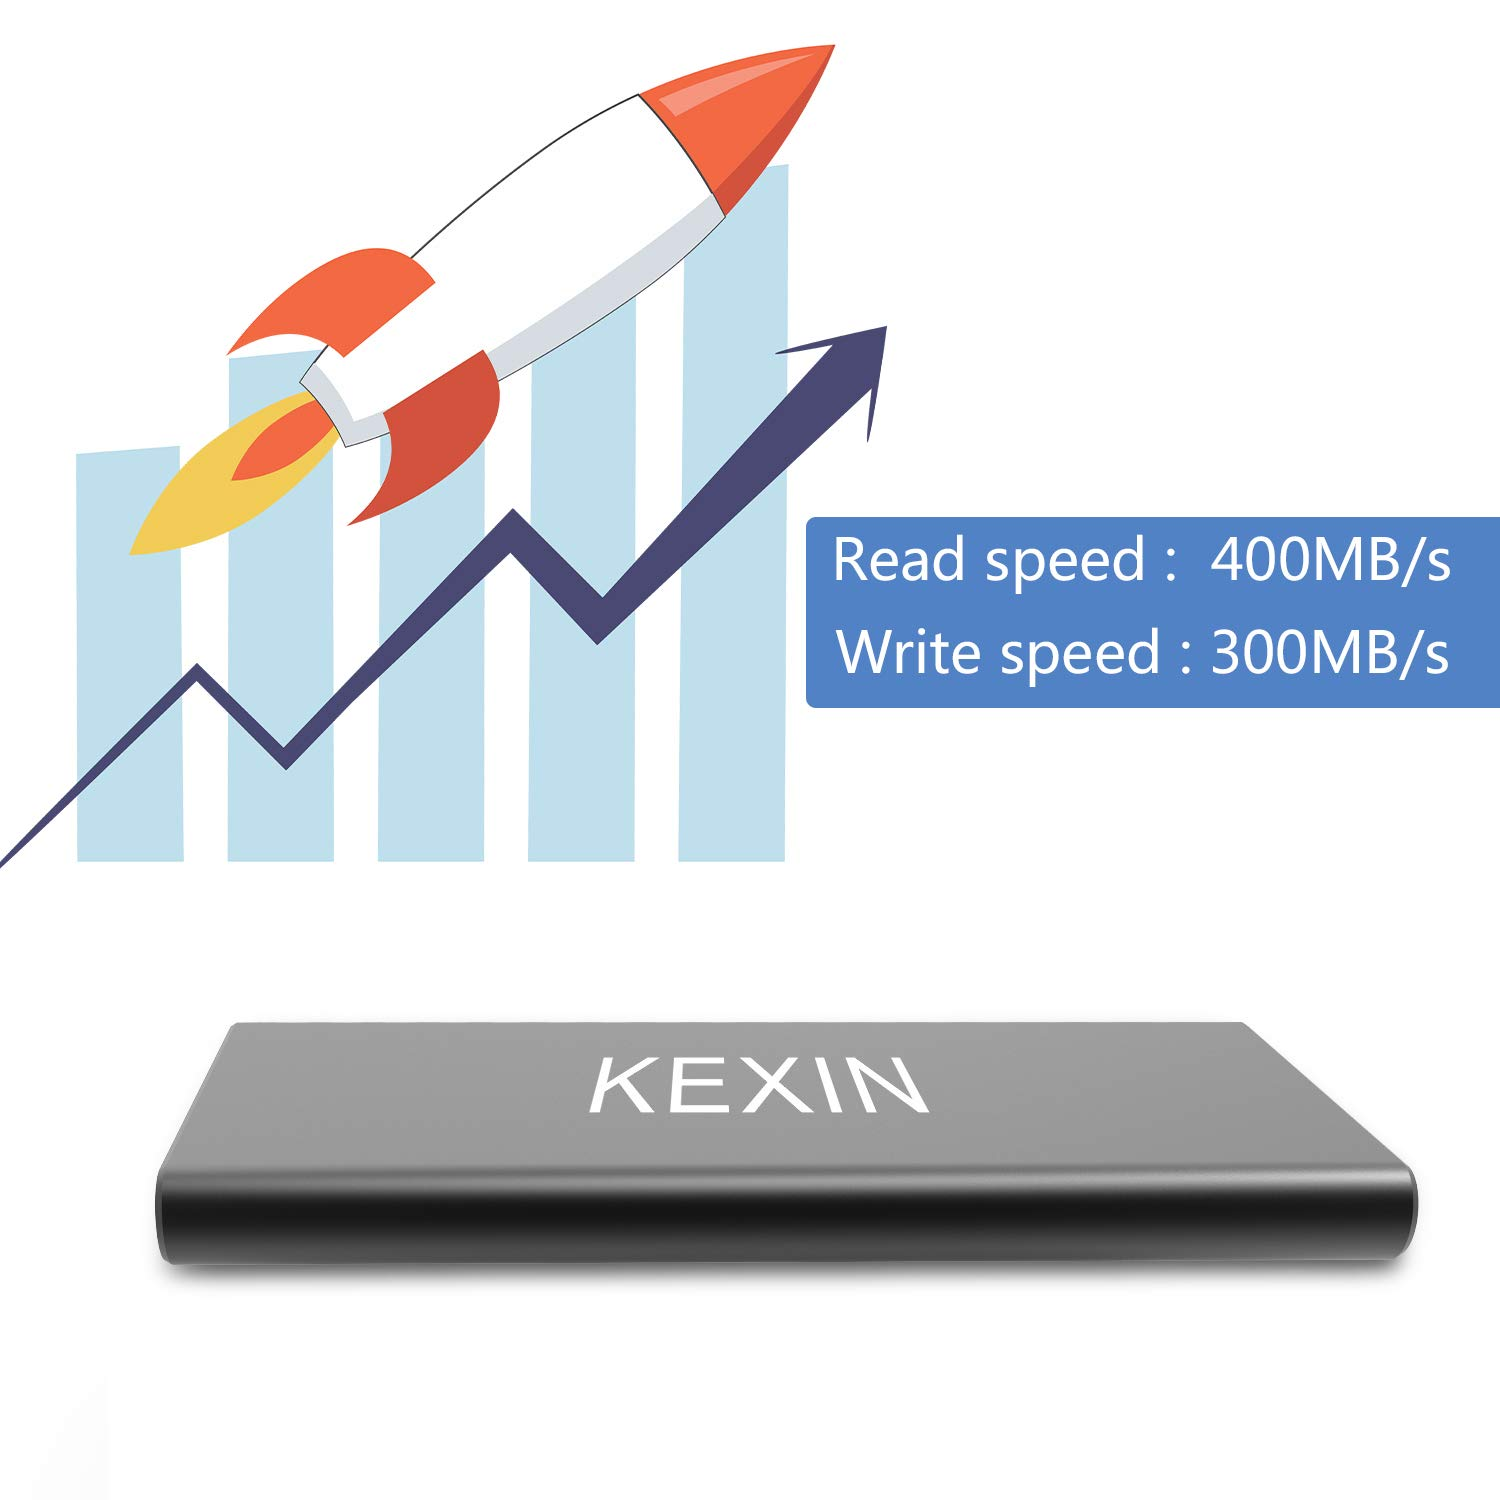 KEXIN 250GB Portable External SSD Drive USB 3.0 High Speed Read & Write up to 400MB/s & 300MB/s External Storage Ultra-Slim Solid State Drive for PC, Desktop, Laptop, MacBook Black by KEXIN (Image #5)